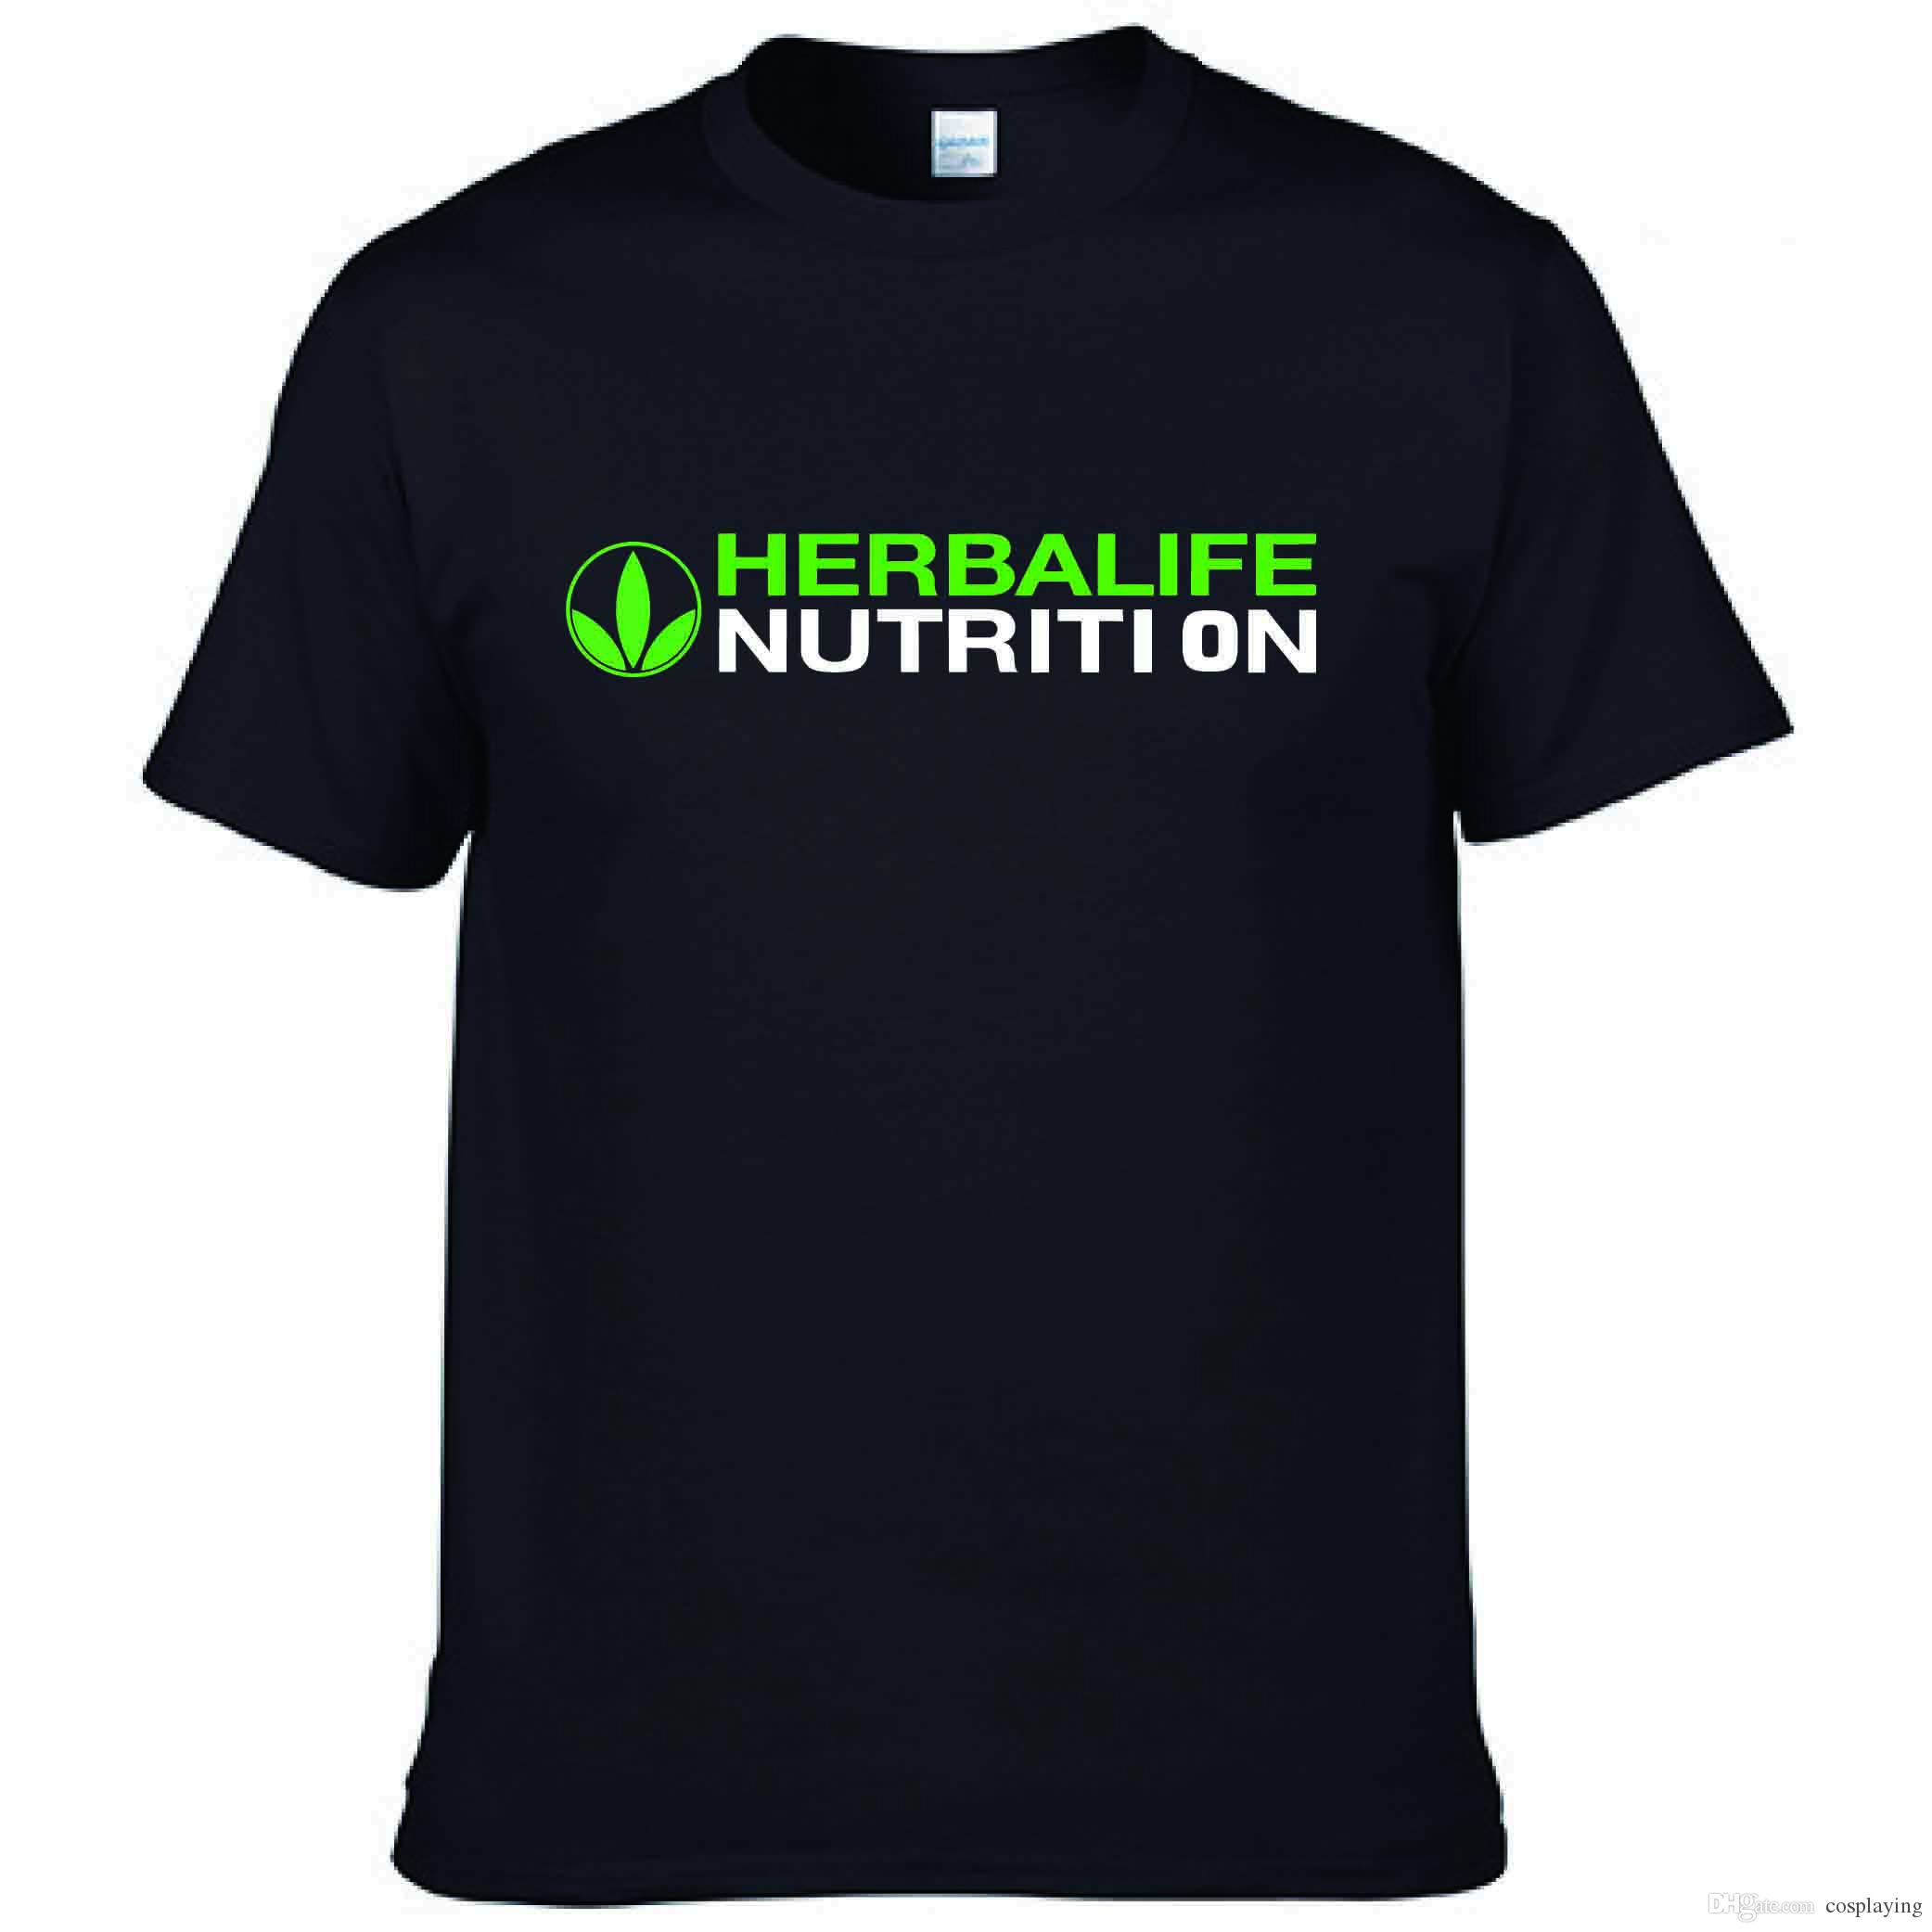 82d5a6bf Herbalife Nutrition T Shirt Fashion Brand Letter Printing Short Sleeved  Shirt Cotton Fit Round Neck Large Size T Shirt Summer New Fun Tee Shirt  Shop Online ...